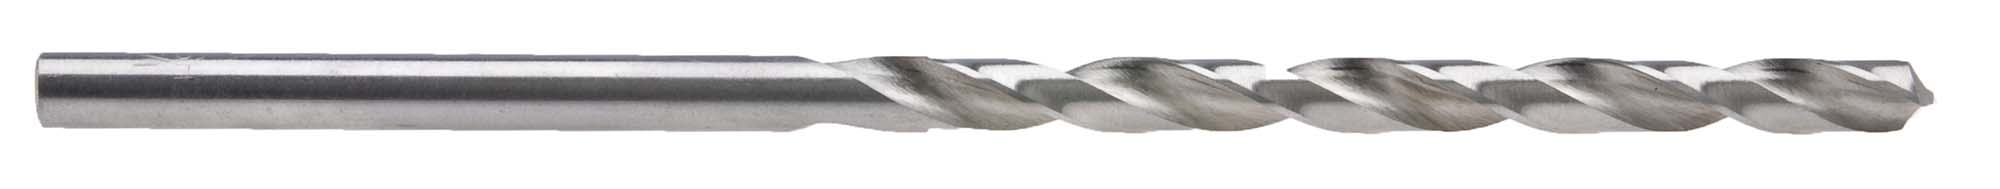 "15/16""  ""Taper Length"" Long Straight Shank Drill Bit, 10 3/4"" Overall Length, High Speed Steel"